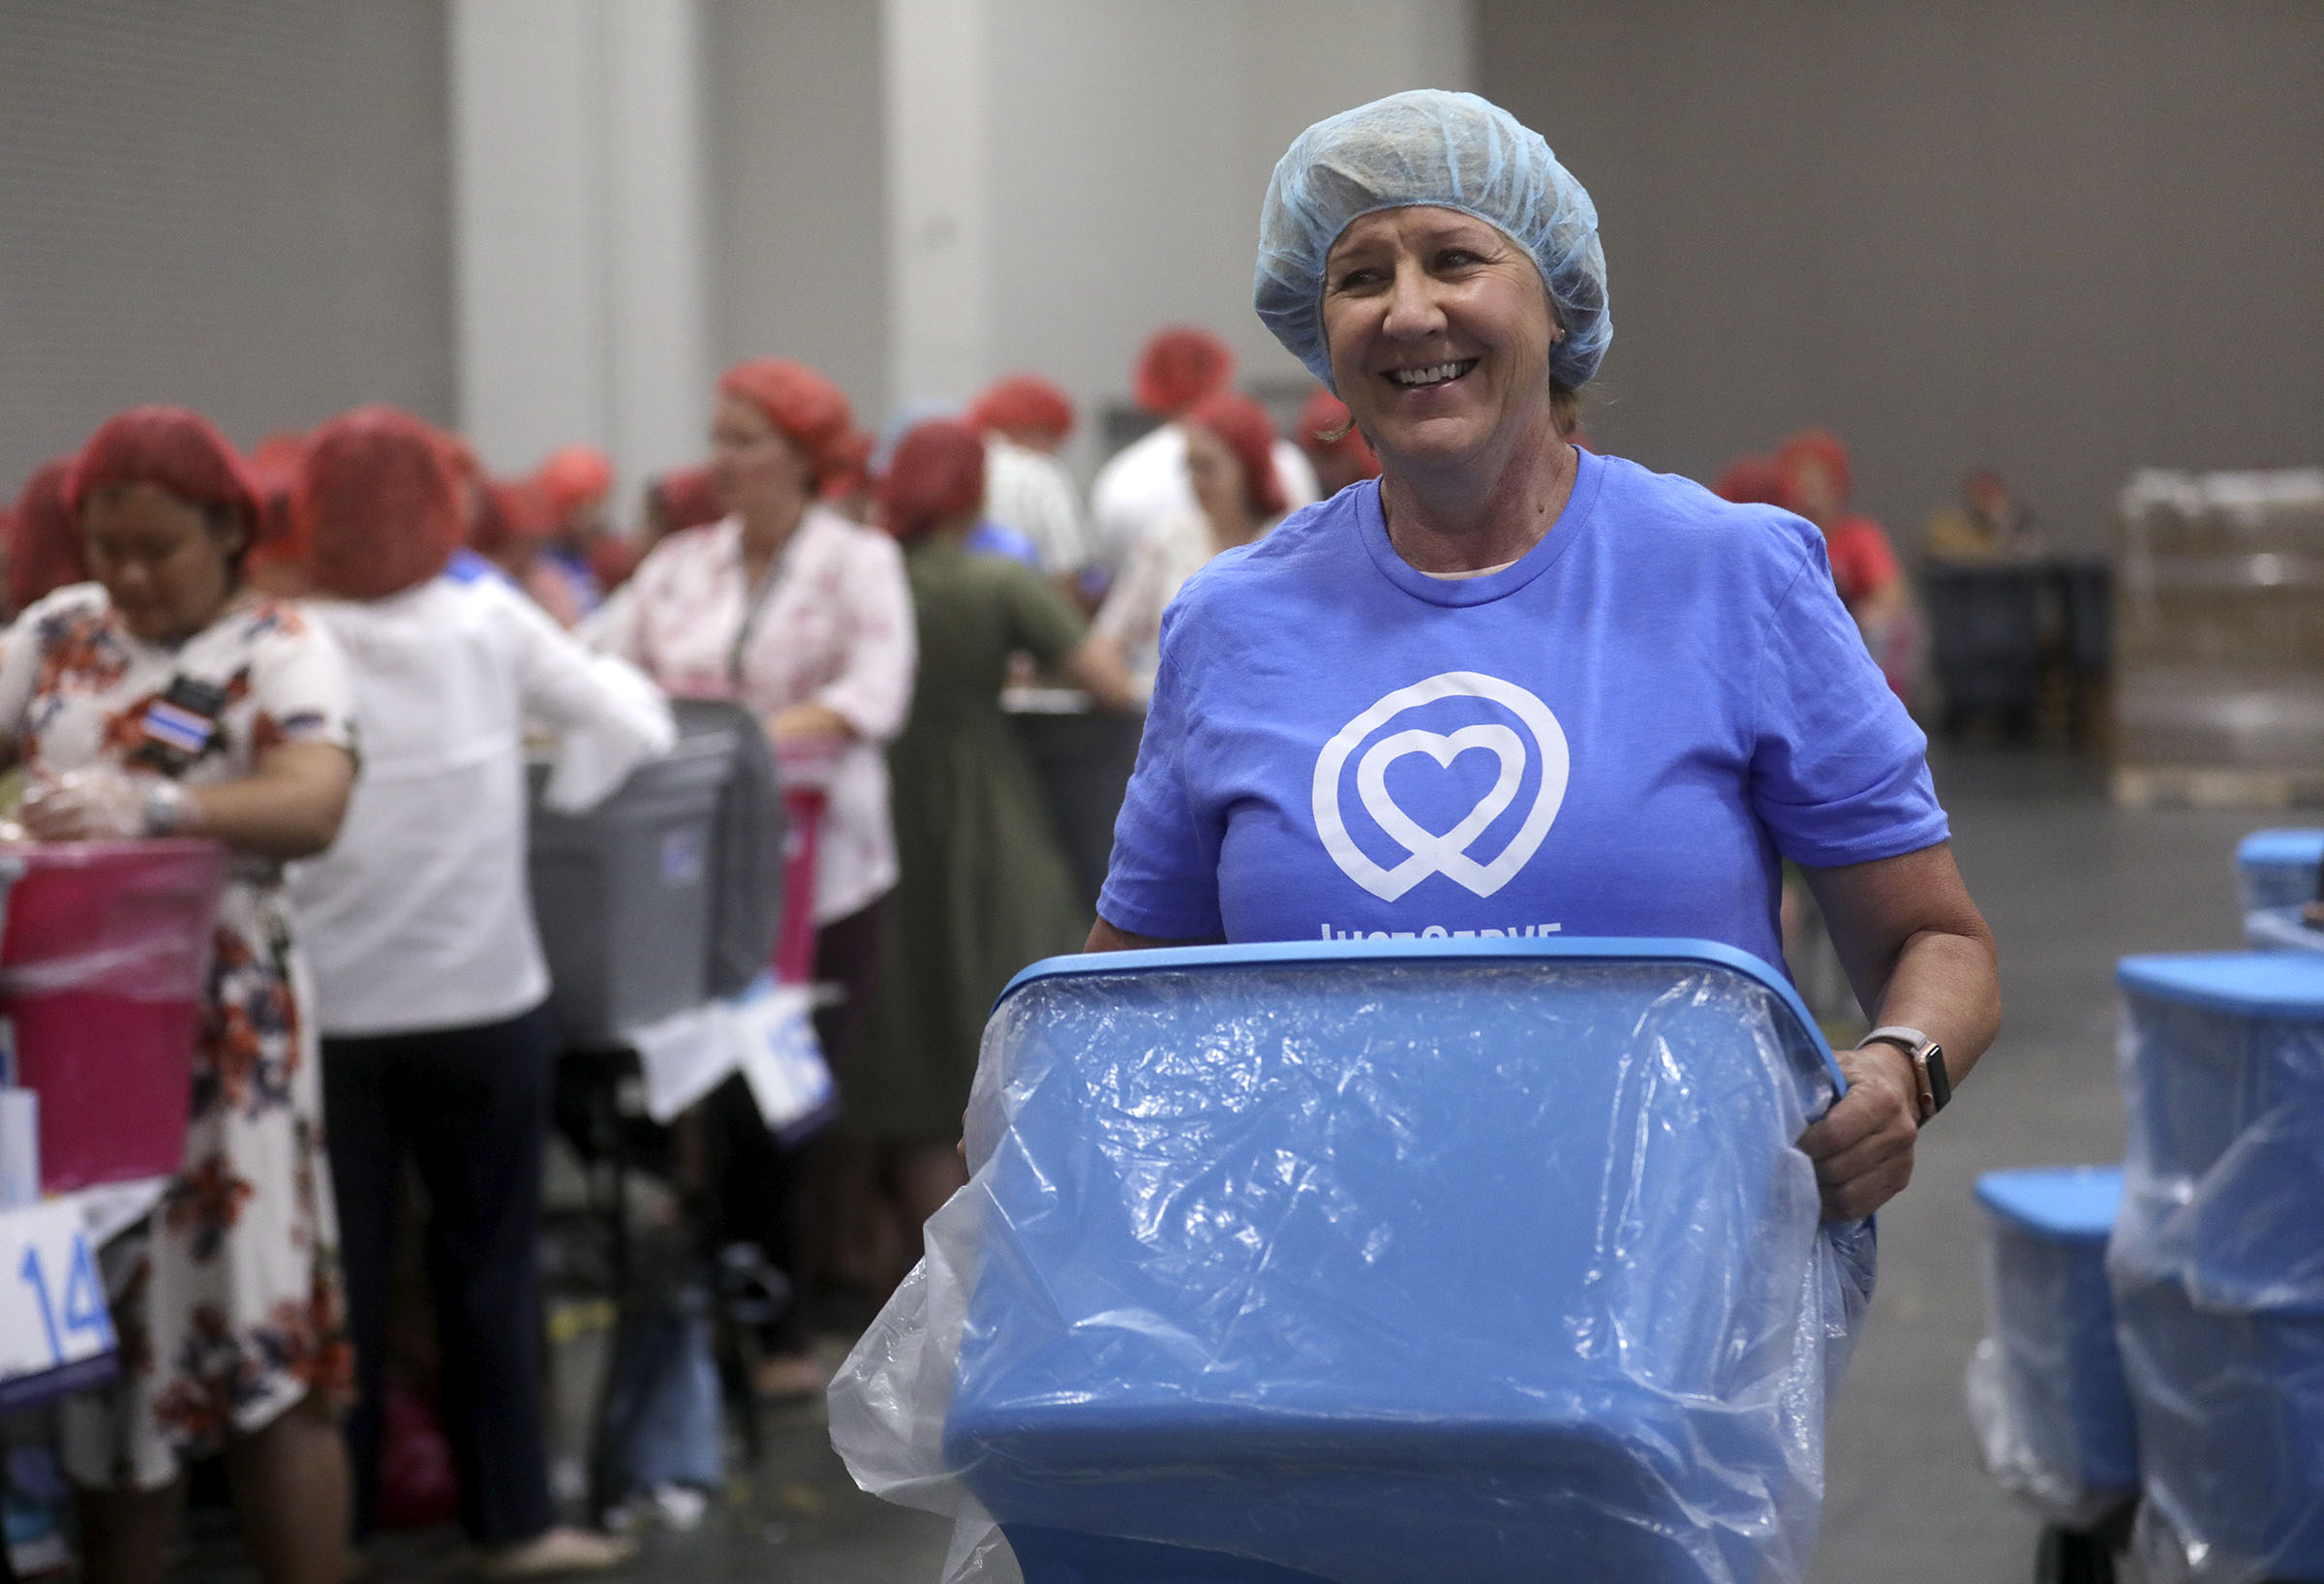 Volunteers take shifts on a service project, bagging pasta, during the 68th United Nations Civil Society Conference at the Salt Palace Convention Center in Salt Lake City on Monday, Aug. 26, 2019.